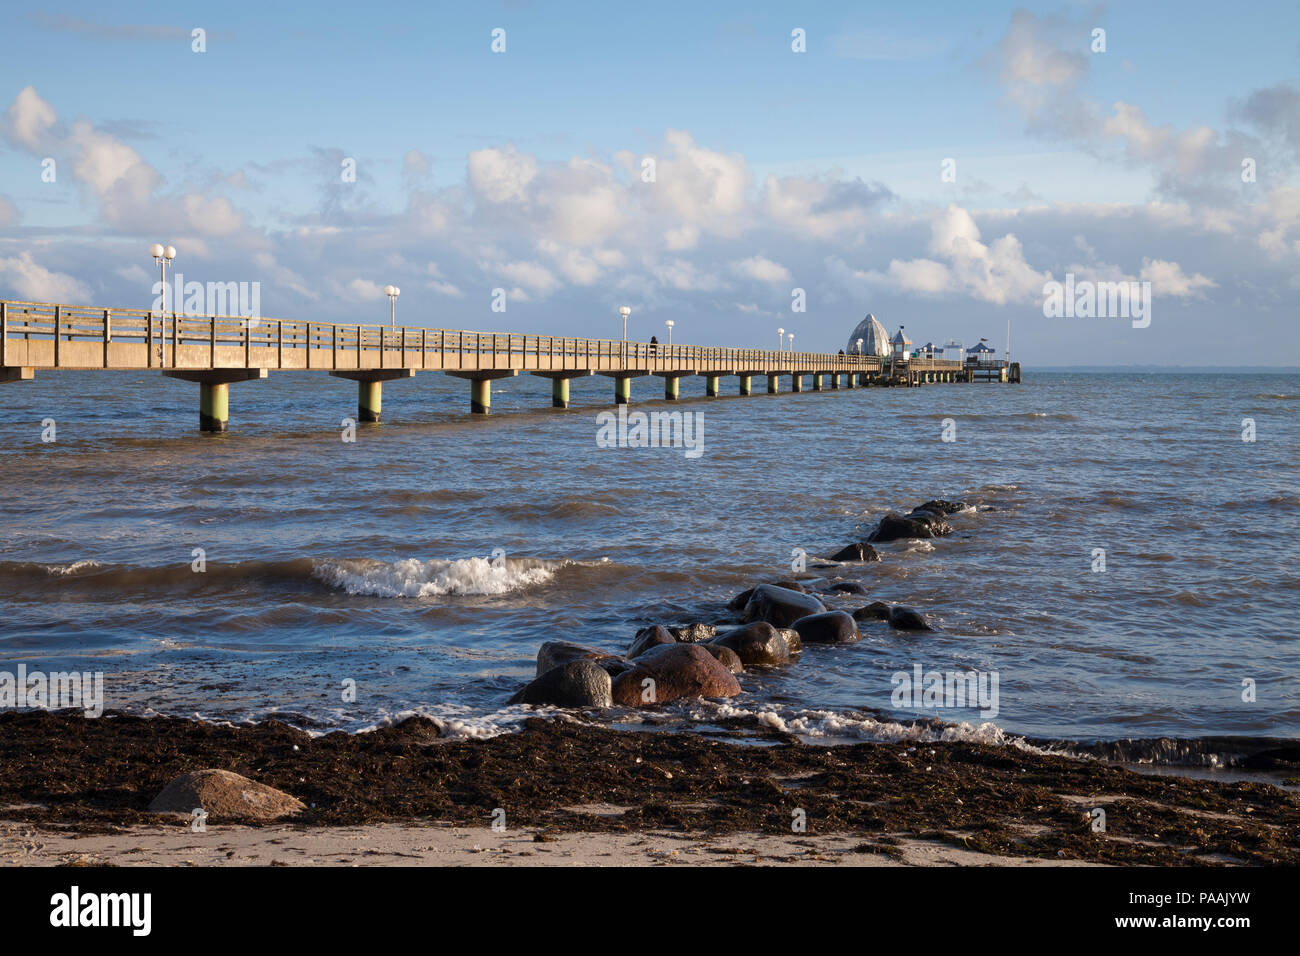 Pier with diving Gondola, Groemitz, Schleswig-Holstein, Germany, Europe Stock Photo